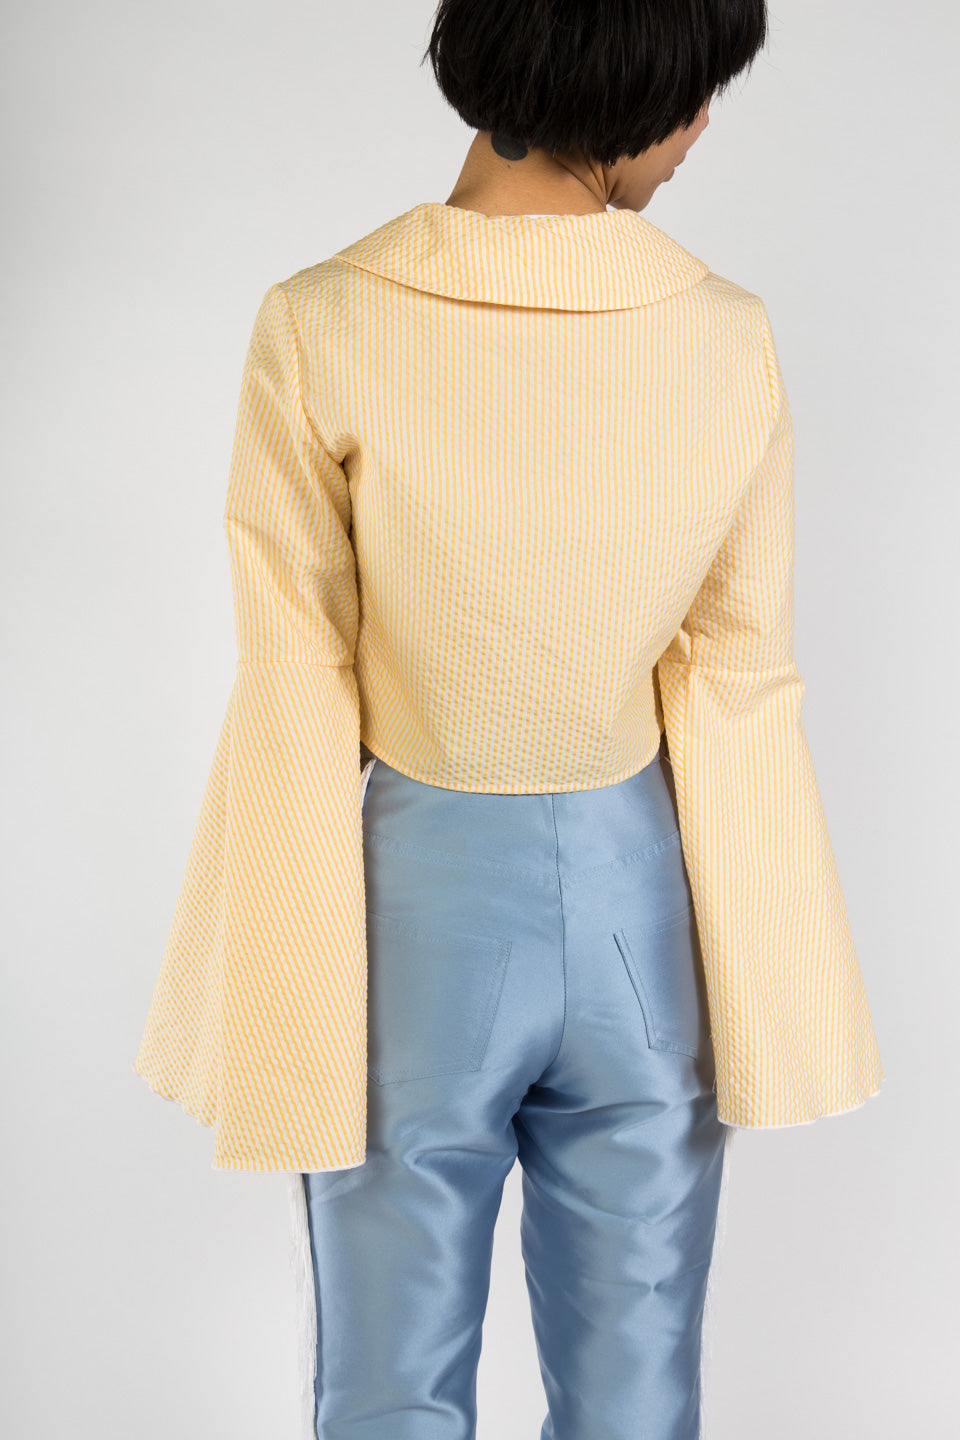 Suzanne Rae Flare Sleeve Blouse-Yellow Top